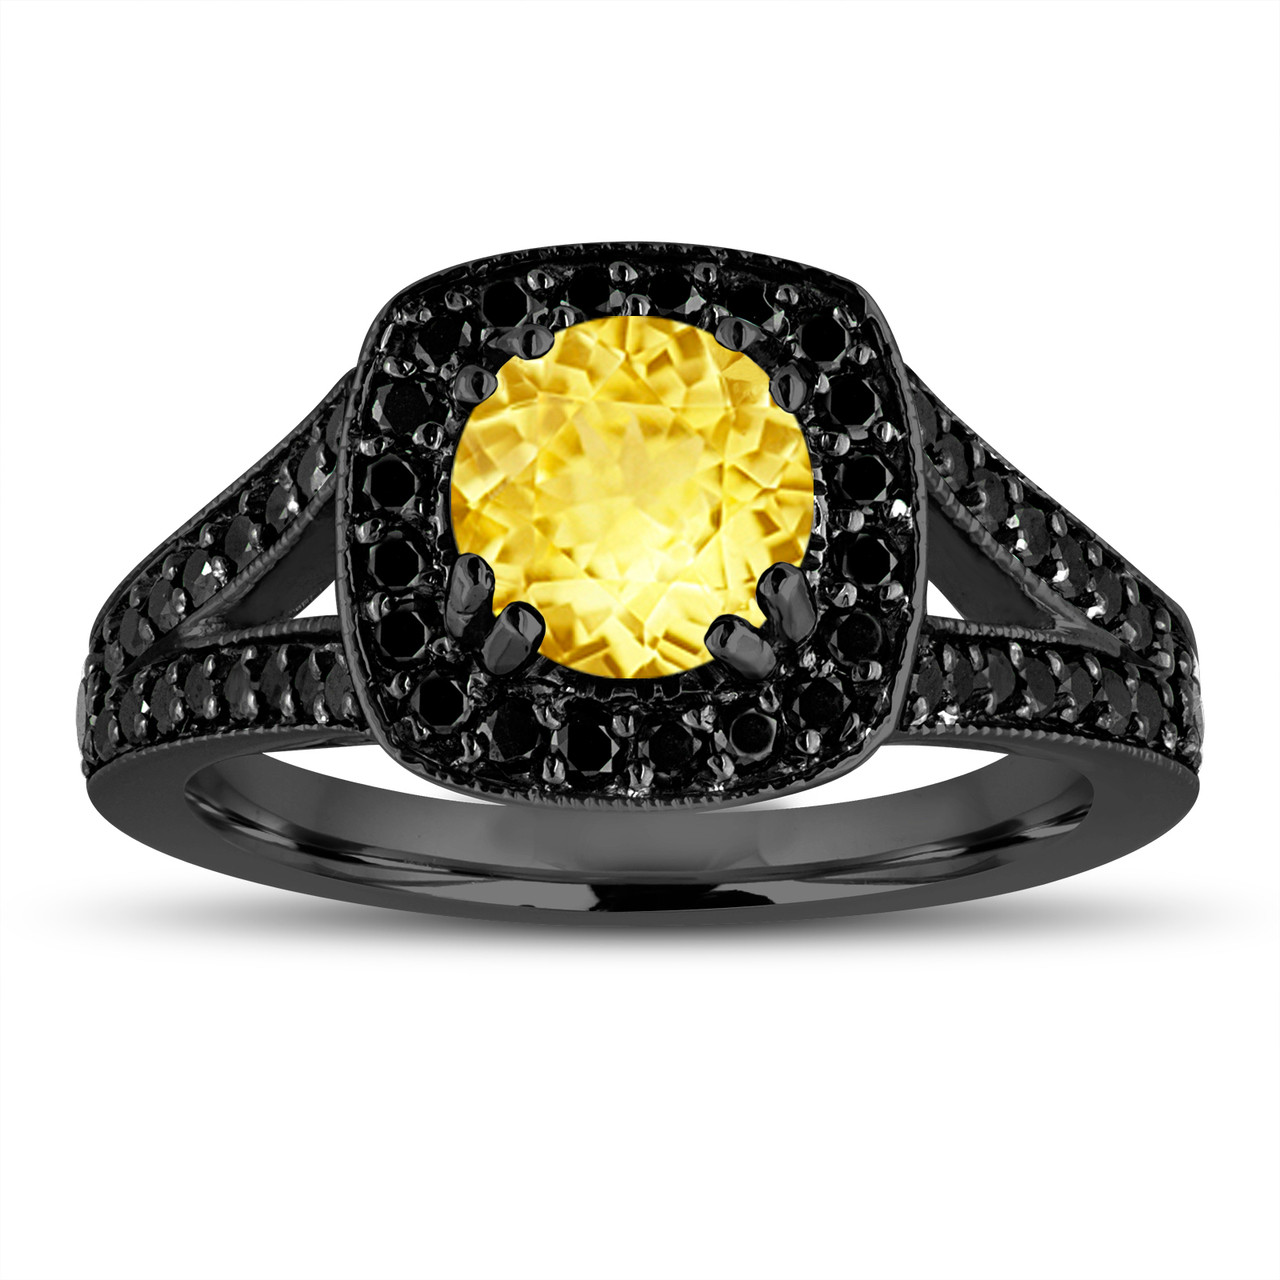 06ca7aca6fe8f Yellow Sapphire Engagement Ring 14K Black Gold Vintage Style 1.92 Carat  With Fancy Black Diamonds Unique Halo Pave Handmade Certified